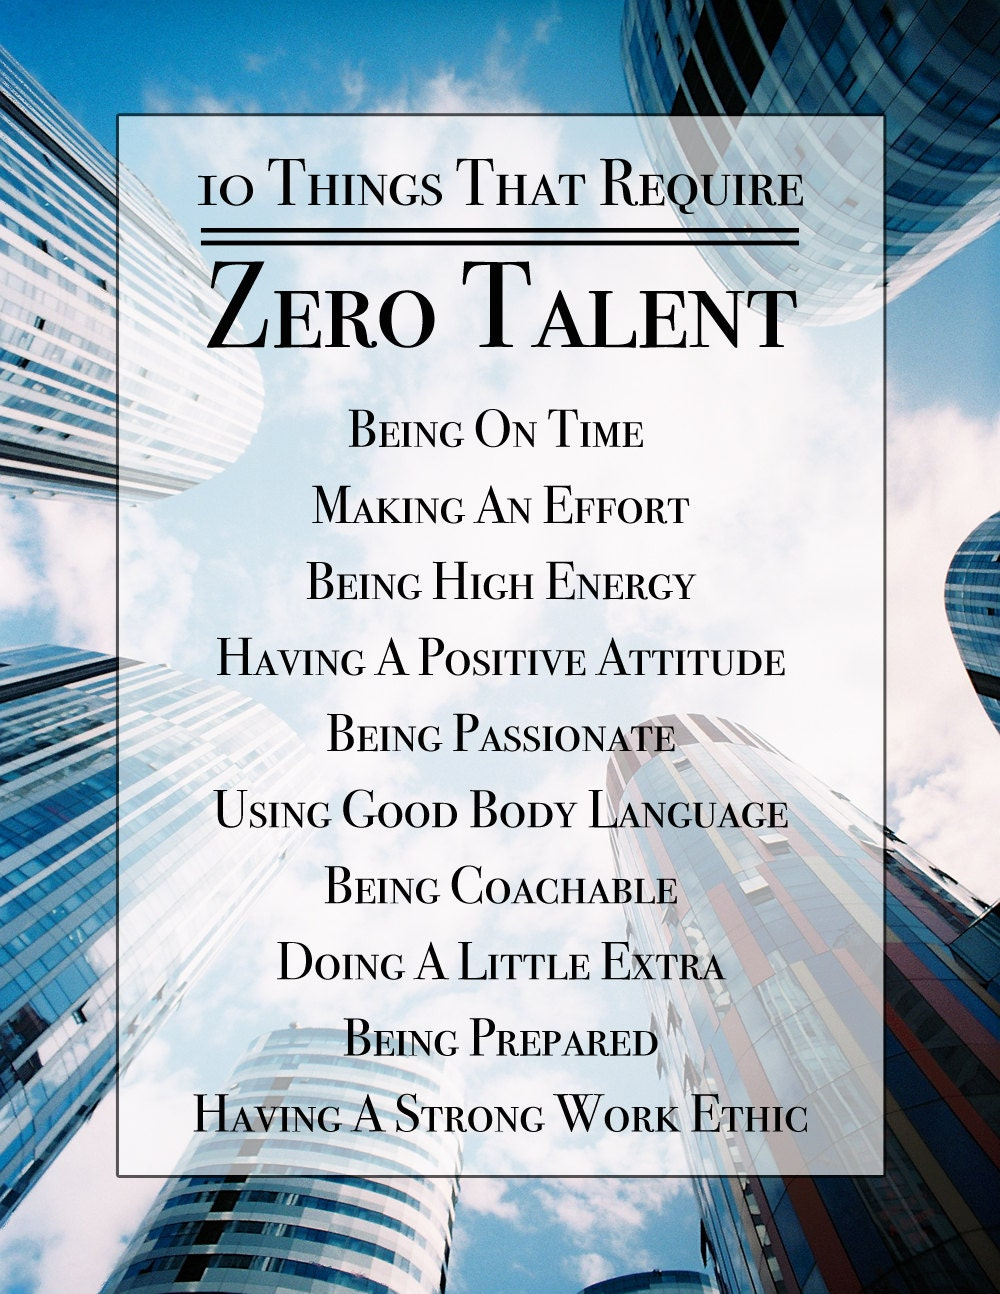 Trust image with 10 things that require zero talent printable